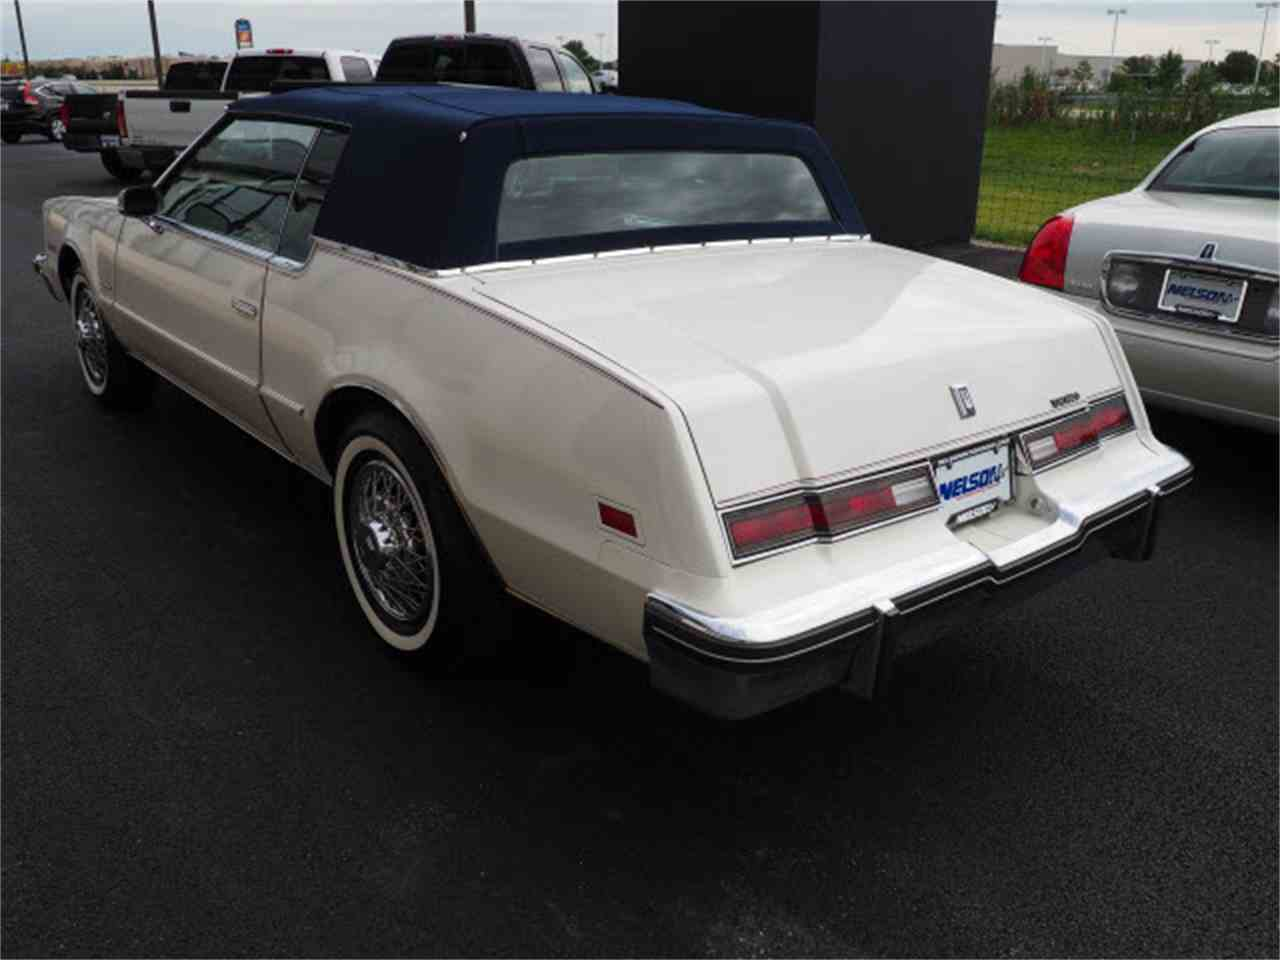 Large Picture of 1985 Oldsmobile Toronado - $15,999.00 Offered by Nelson Automotive, Ltd. - LUQO